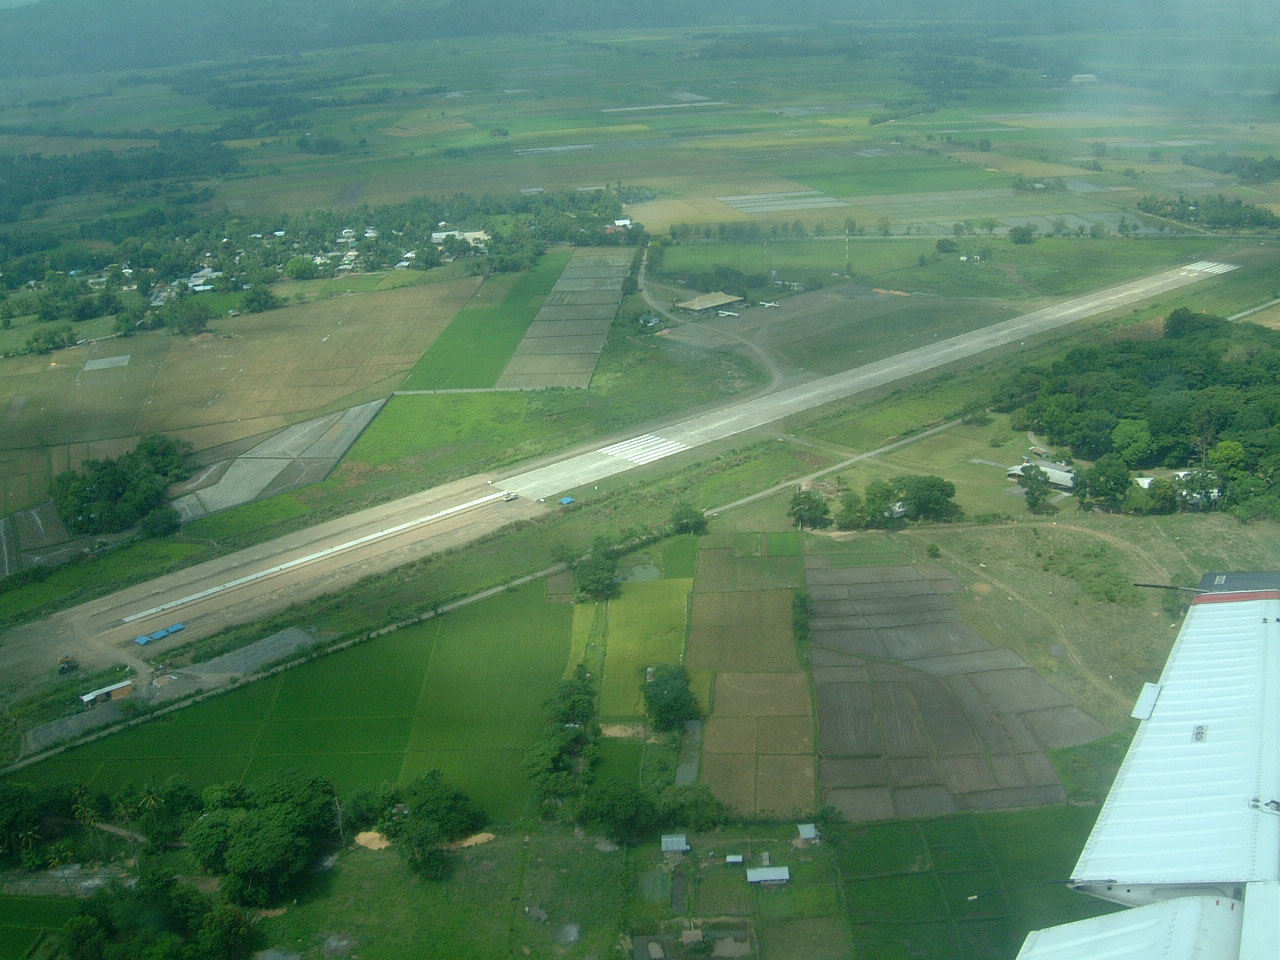 Bagabag Philippines  City new picture : Philippine Airports Luzon Bagabag Airport 200303 01